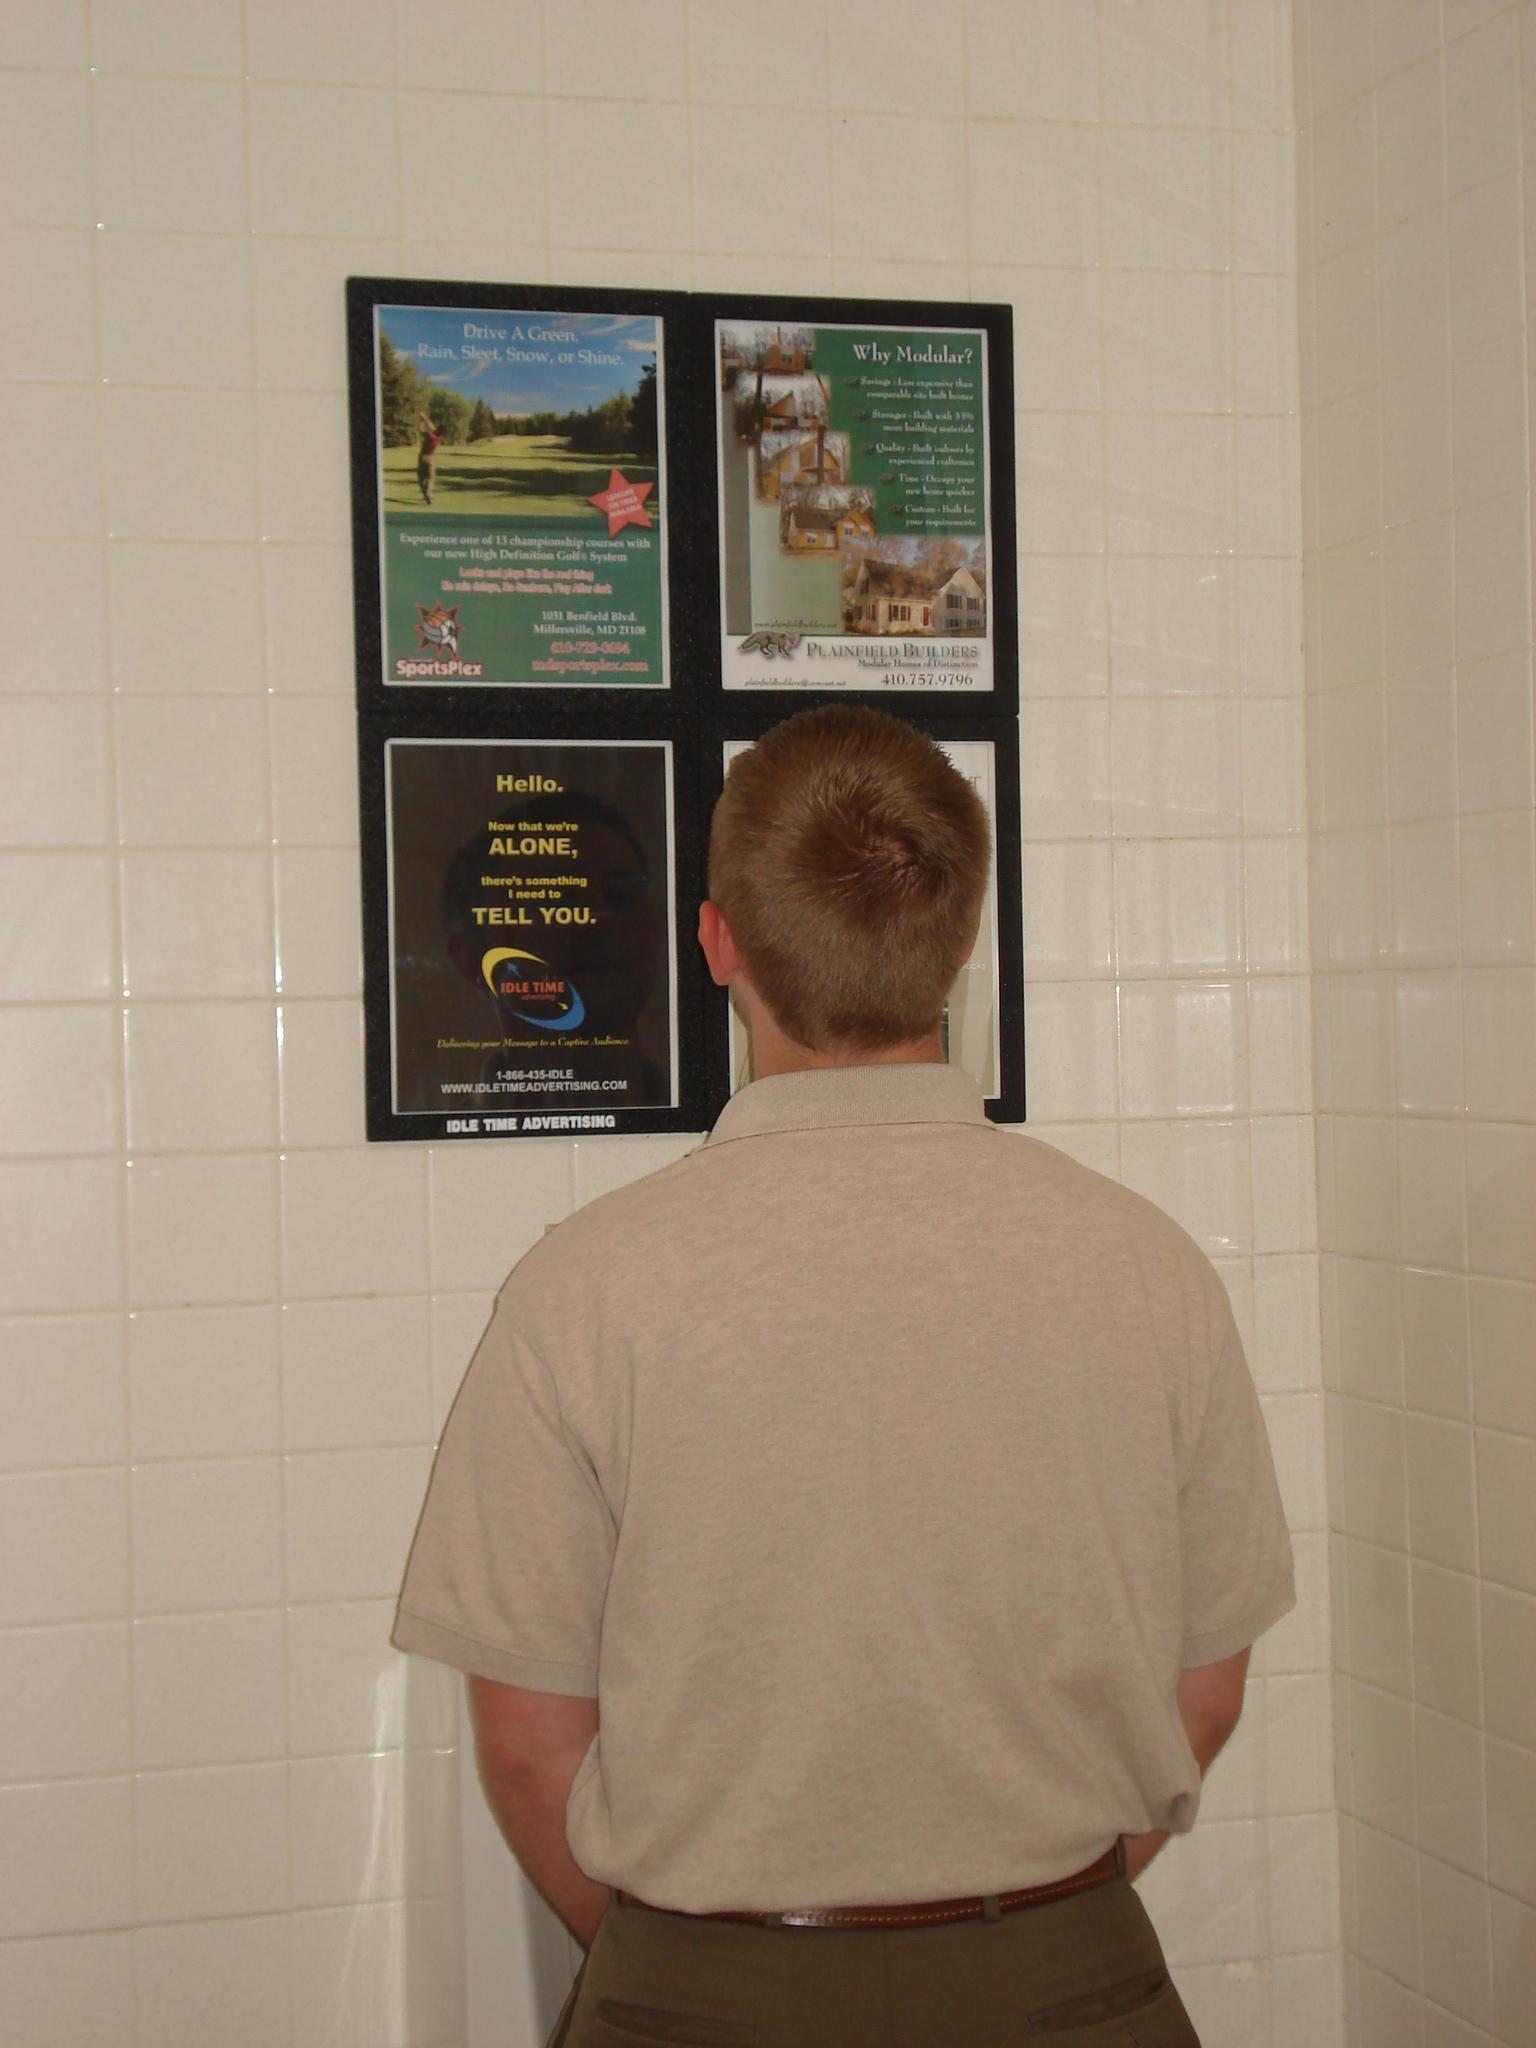 Ita promotions baltimore md guerrilla marketing restroom are solutioingenieria Images